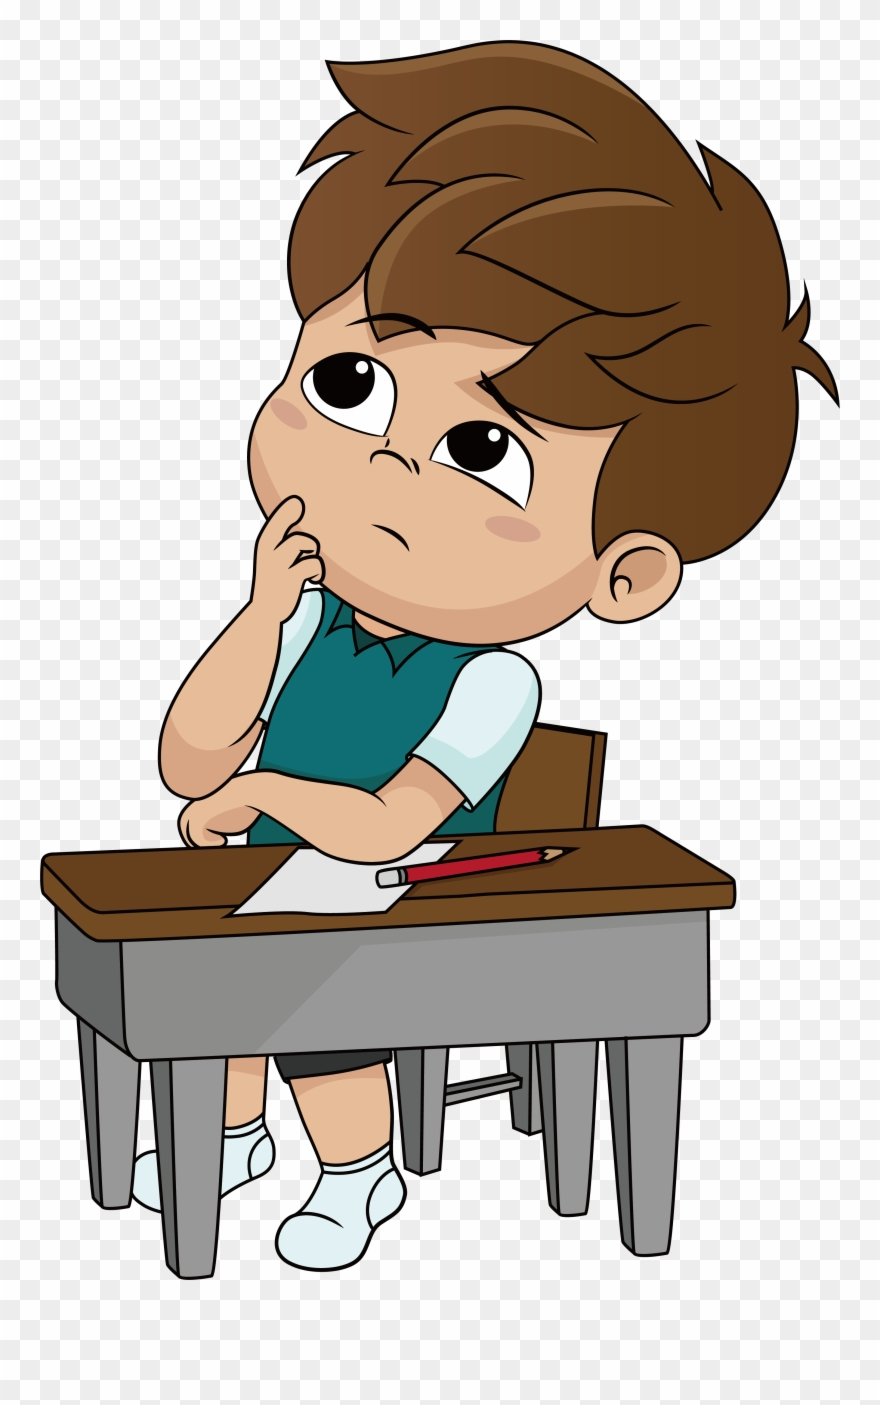 Royalty Free Illustration A Thinking Little Boy Clipart.